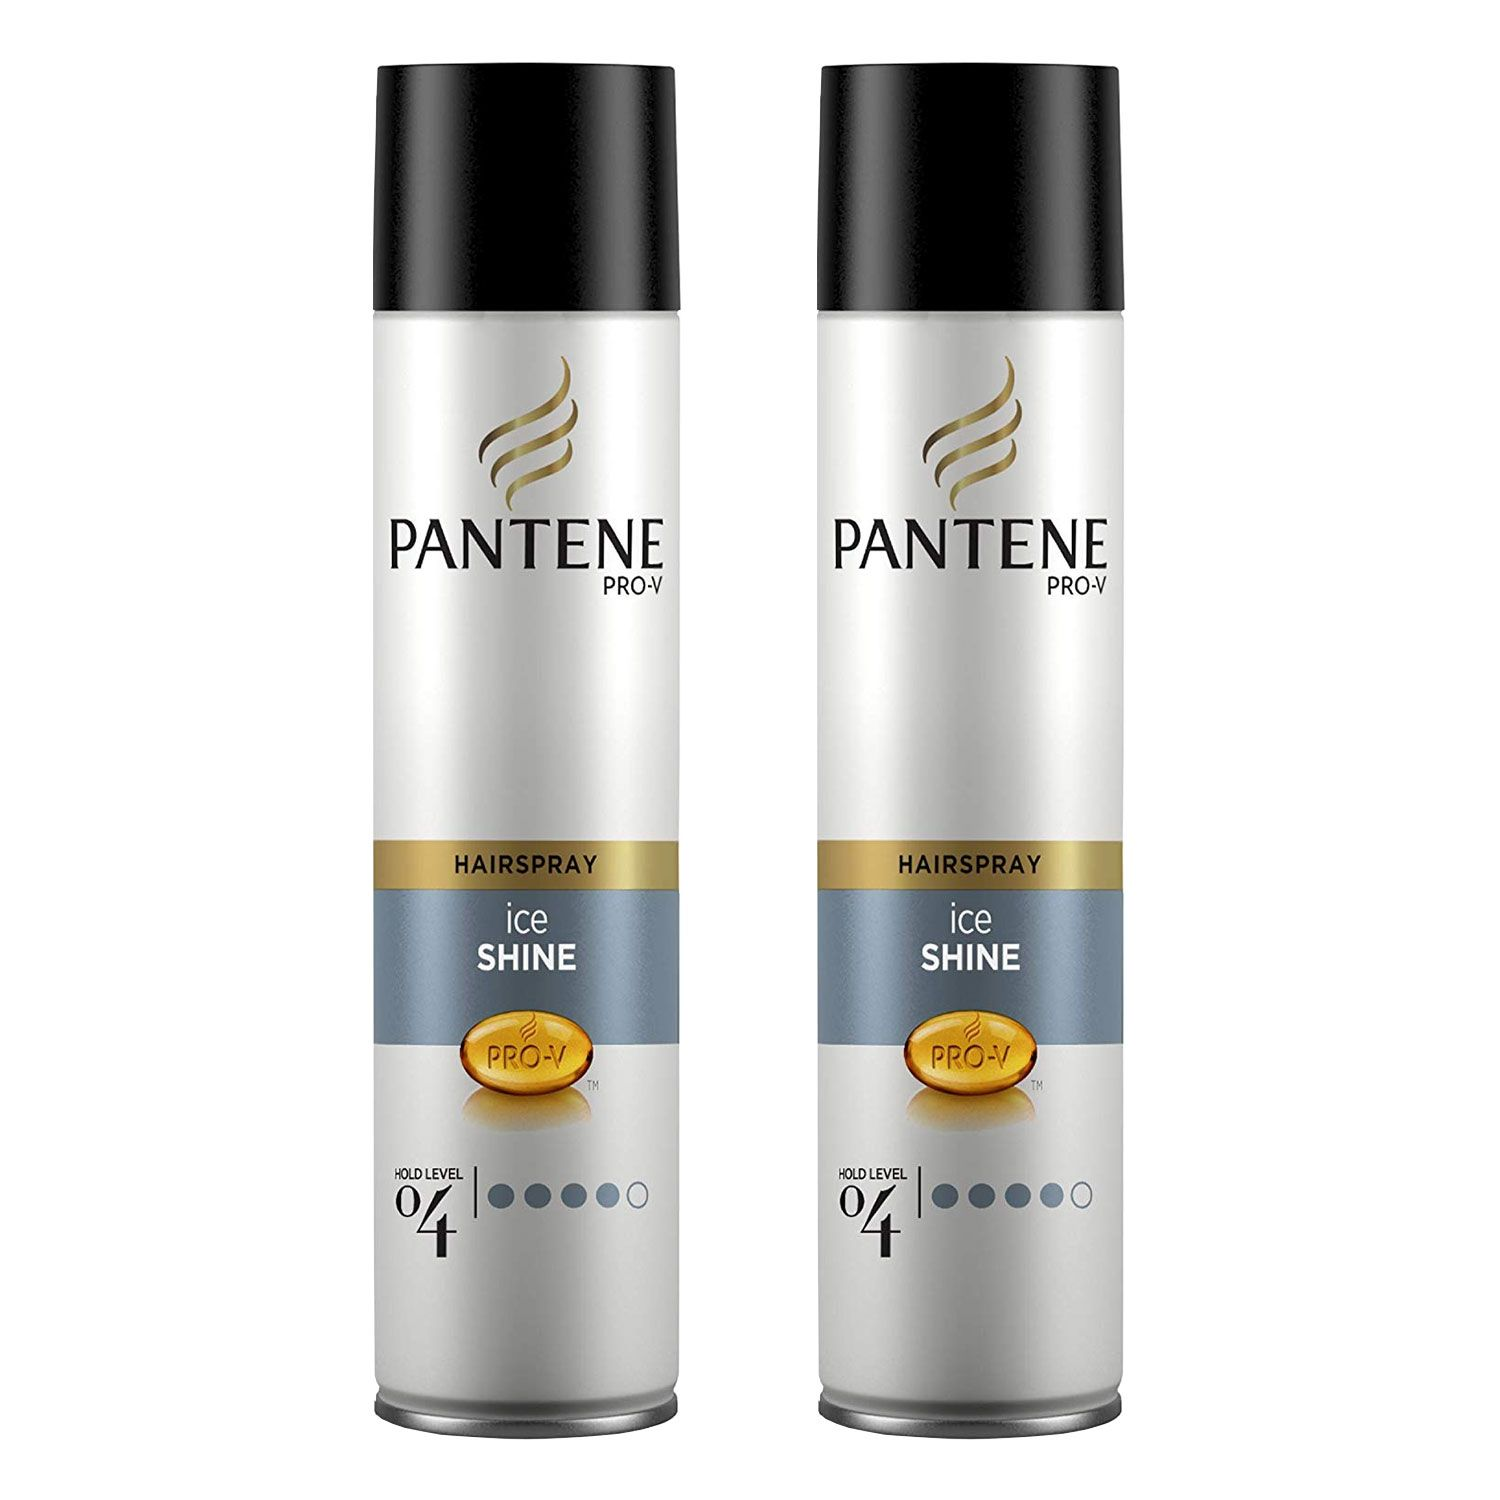 Pantene Hair Spray Ice Shine 2 x 300ml